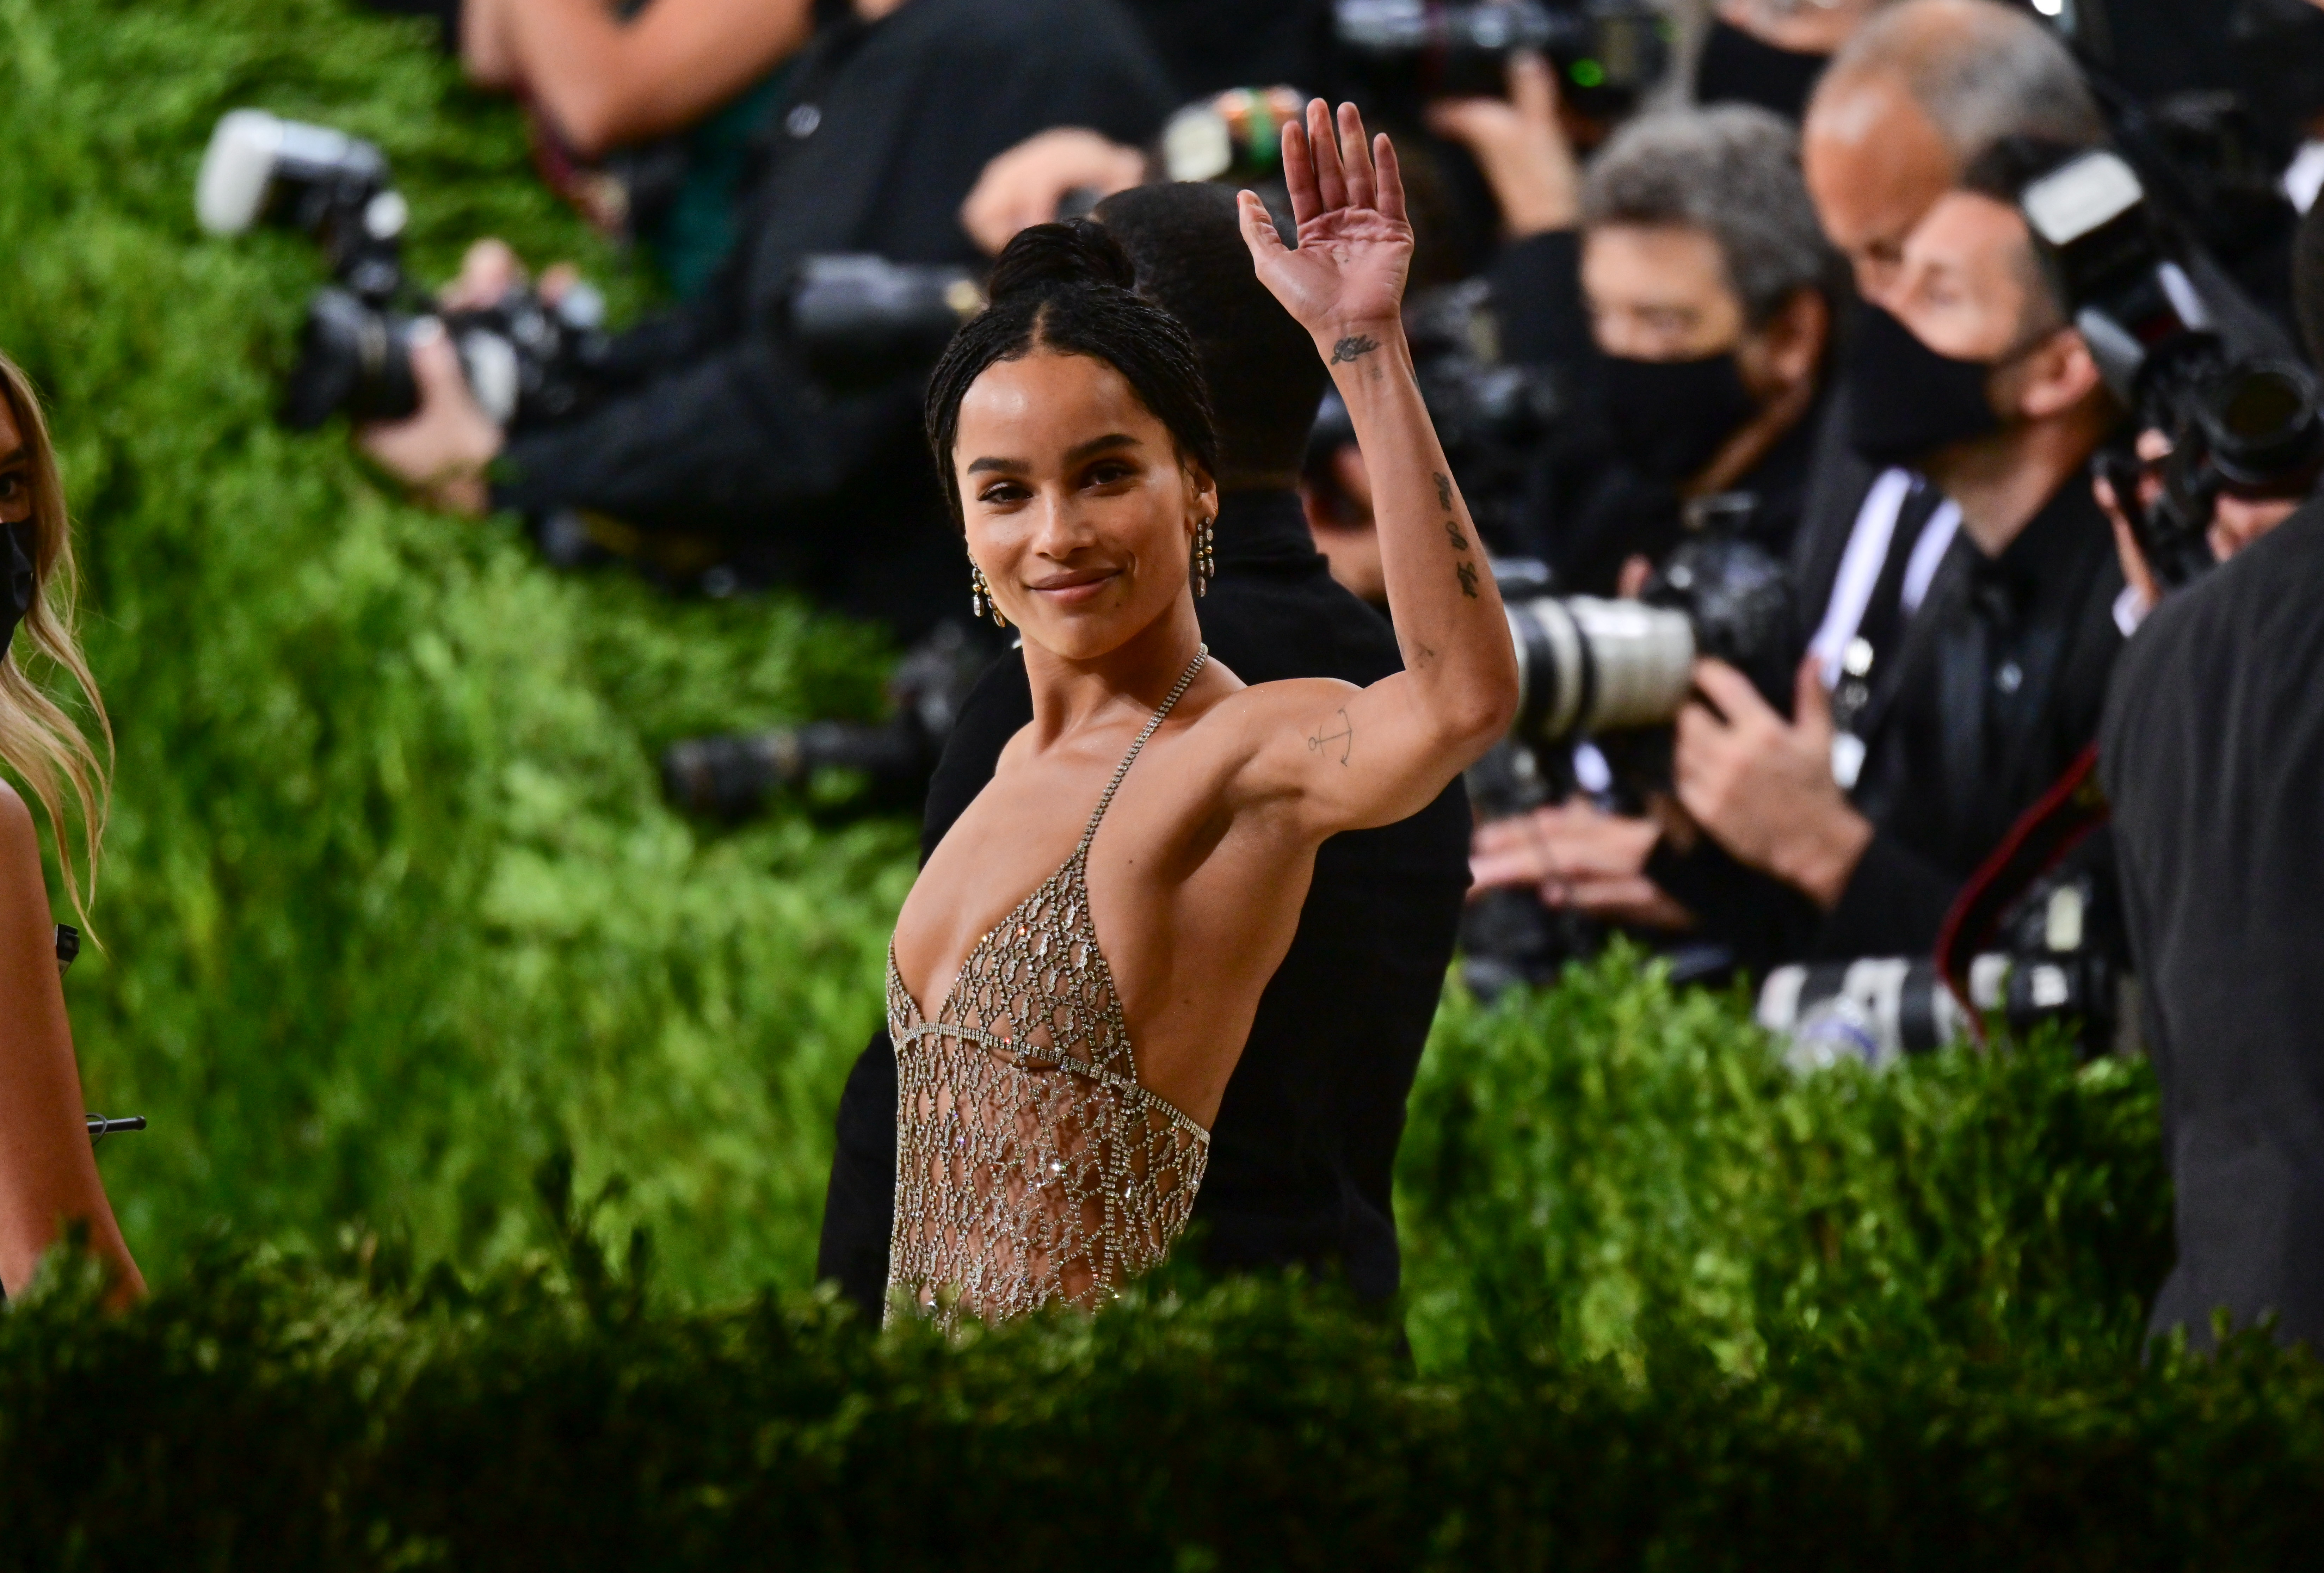 Zoë Kravitz arrives to the 2021 Met Gala Celebrating In America: A Lexicon Of Fashion at Metropolitan Museum of Art on September 13, 2021 in New York City.